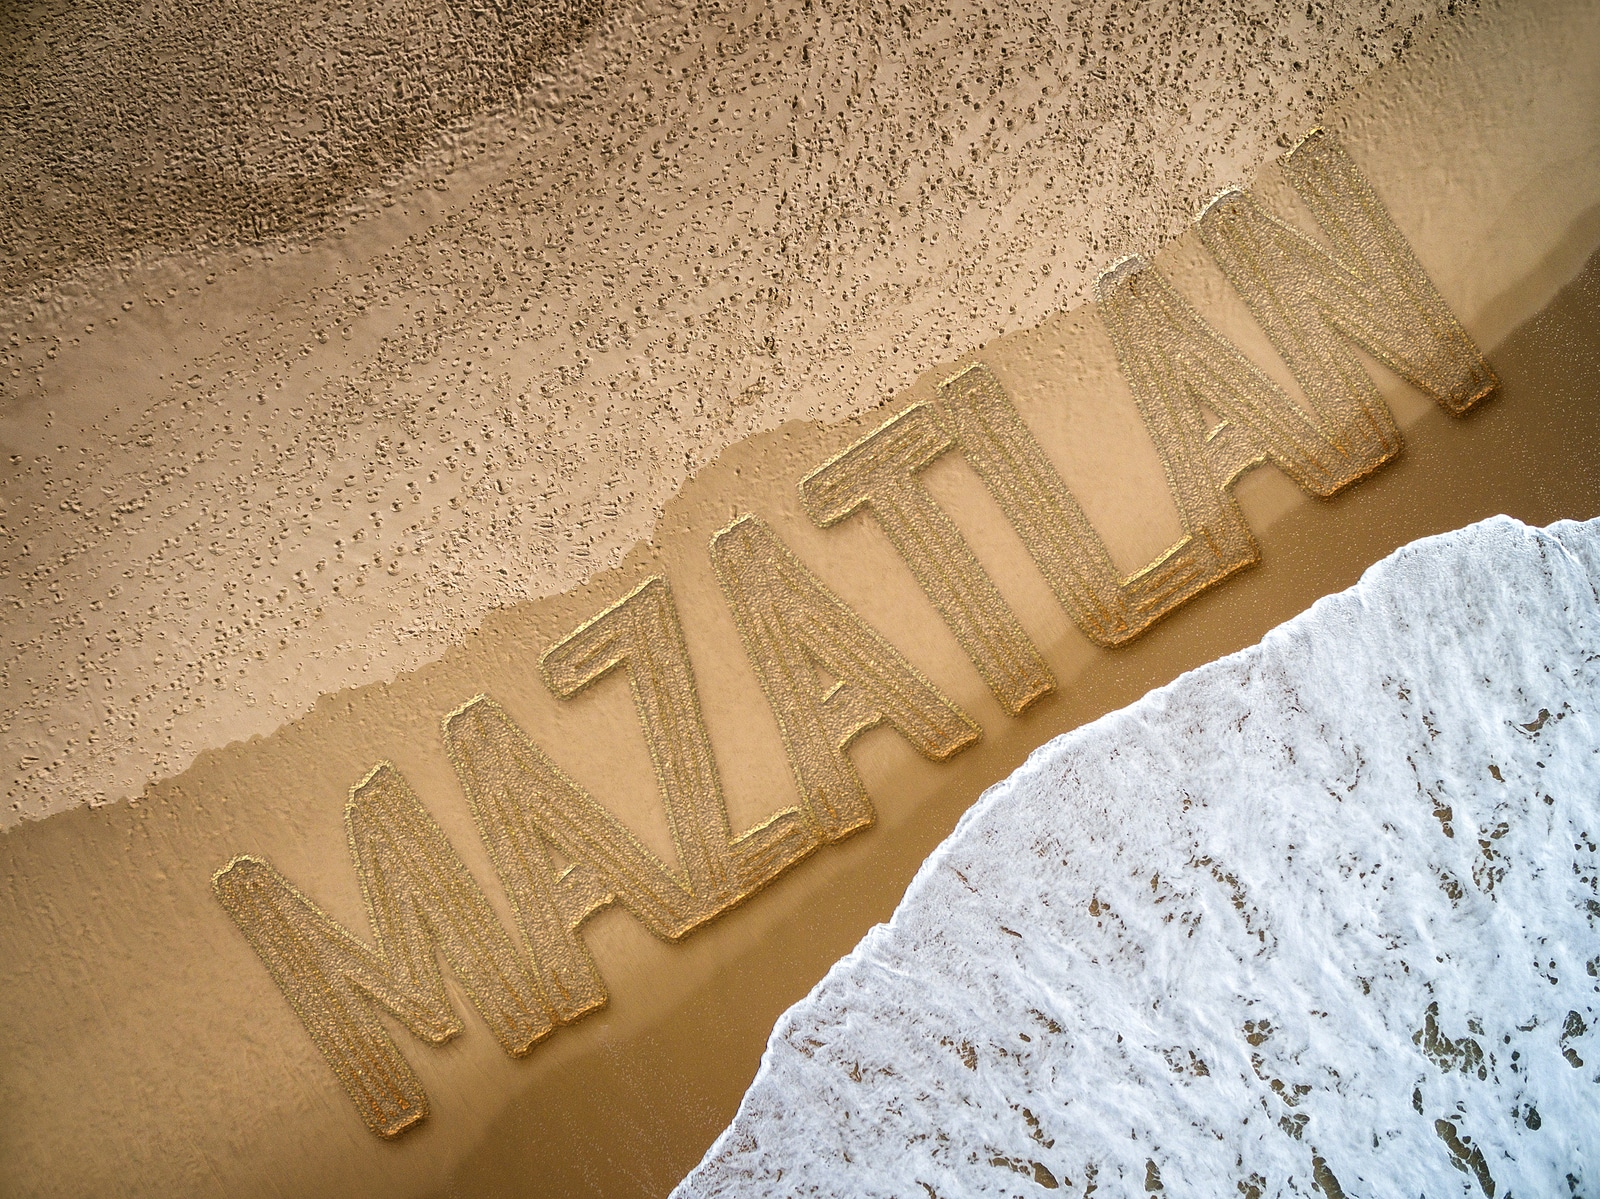 Mazatlan written on the beach